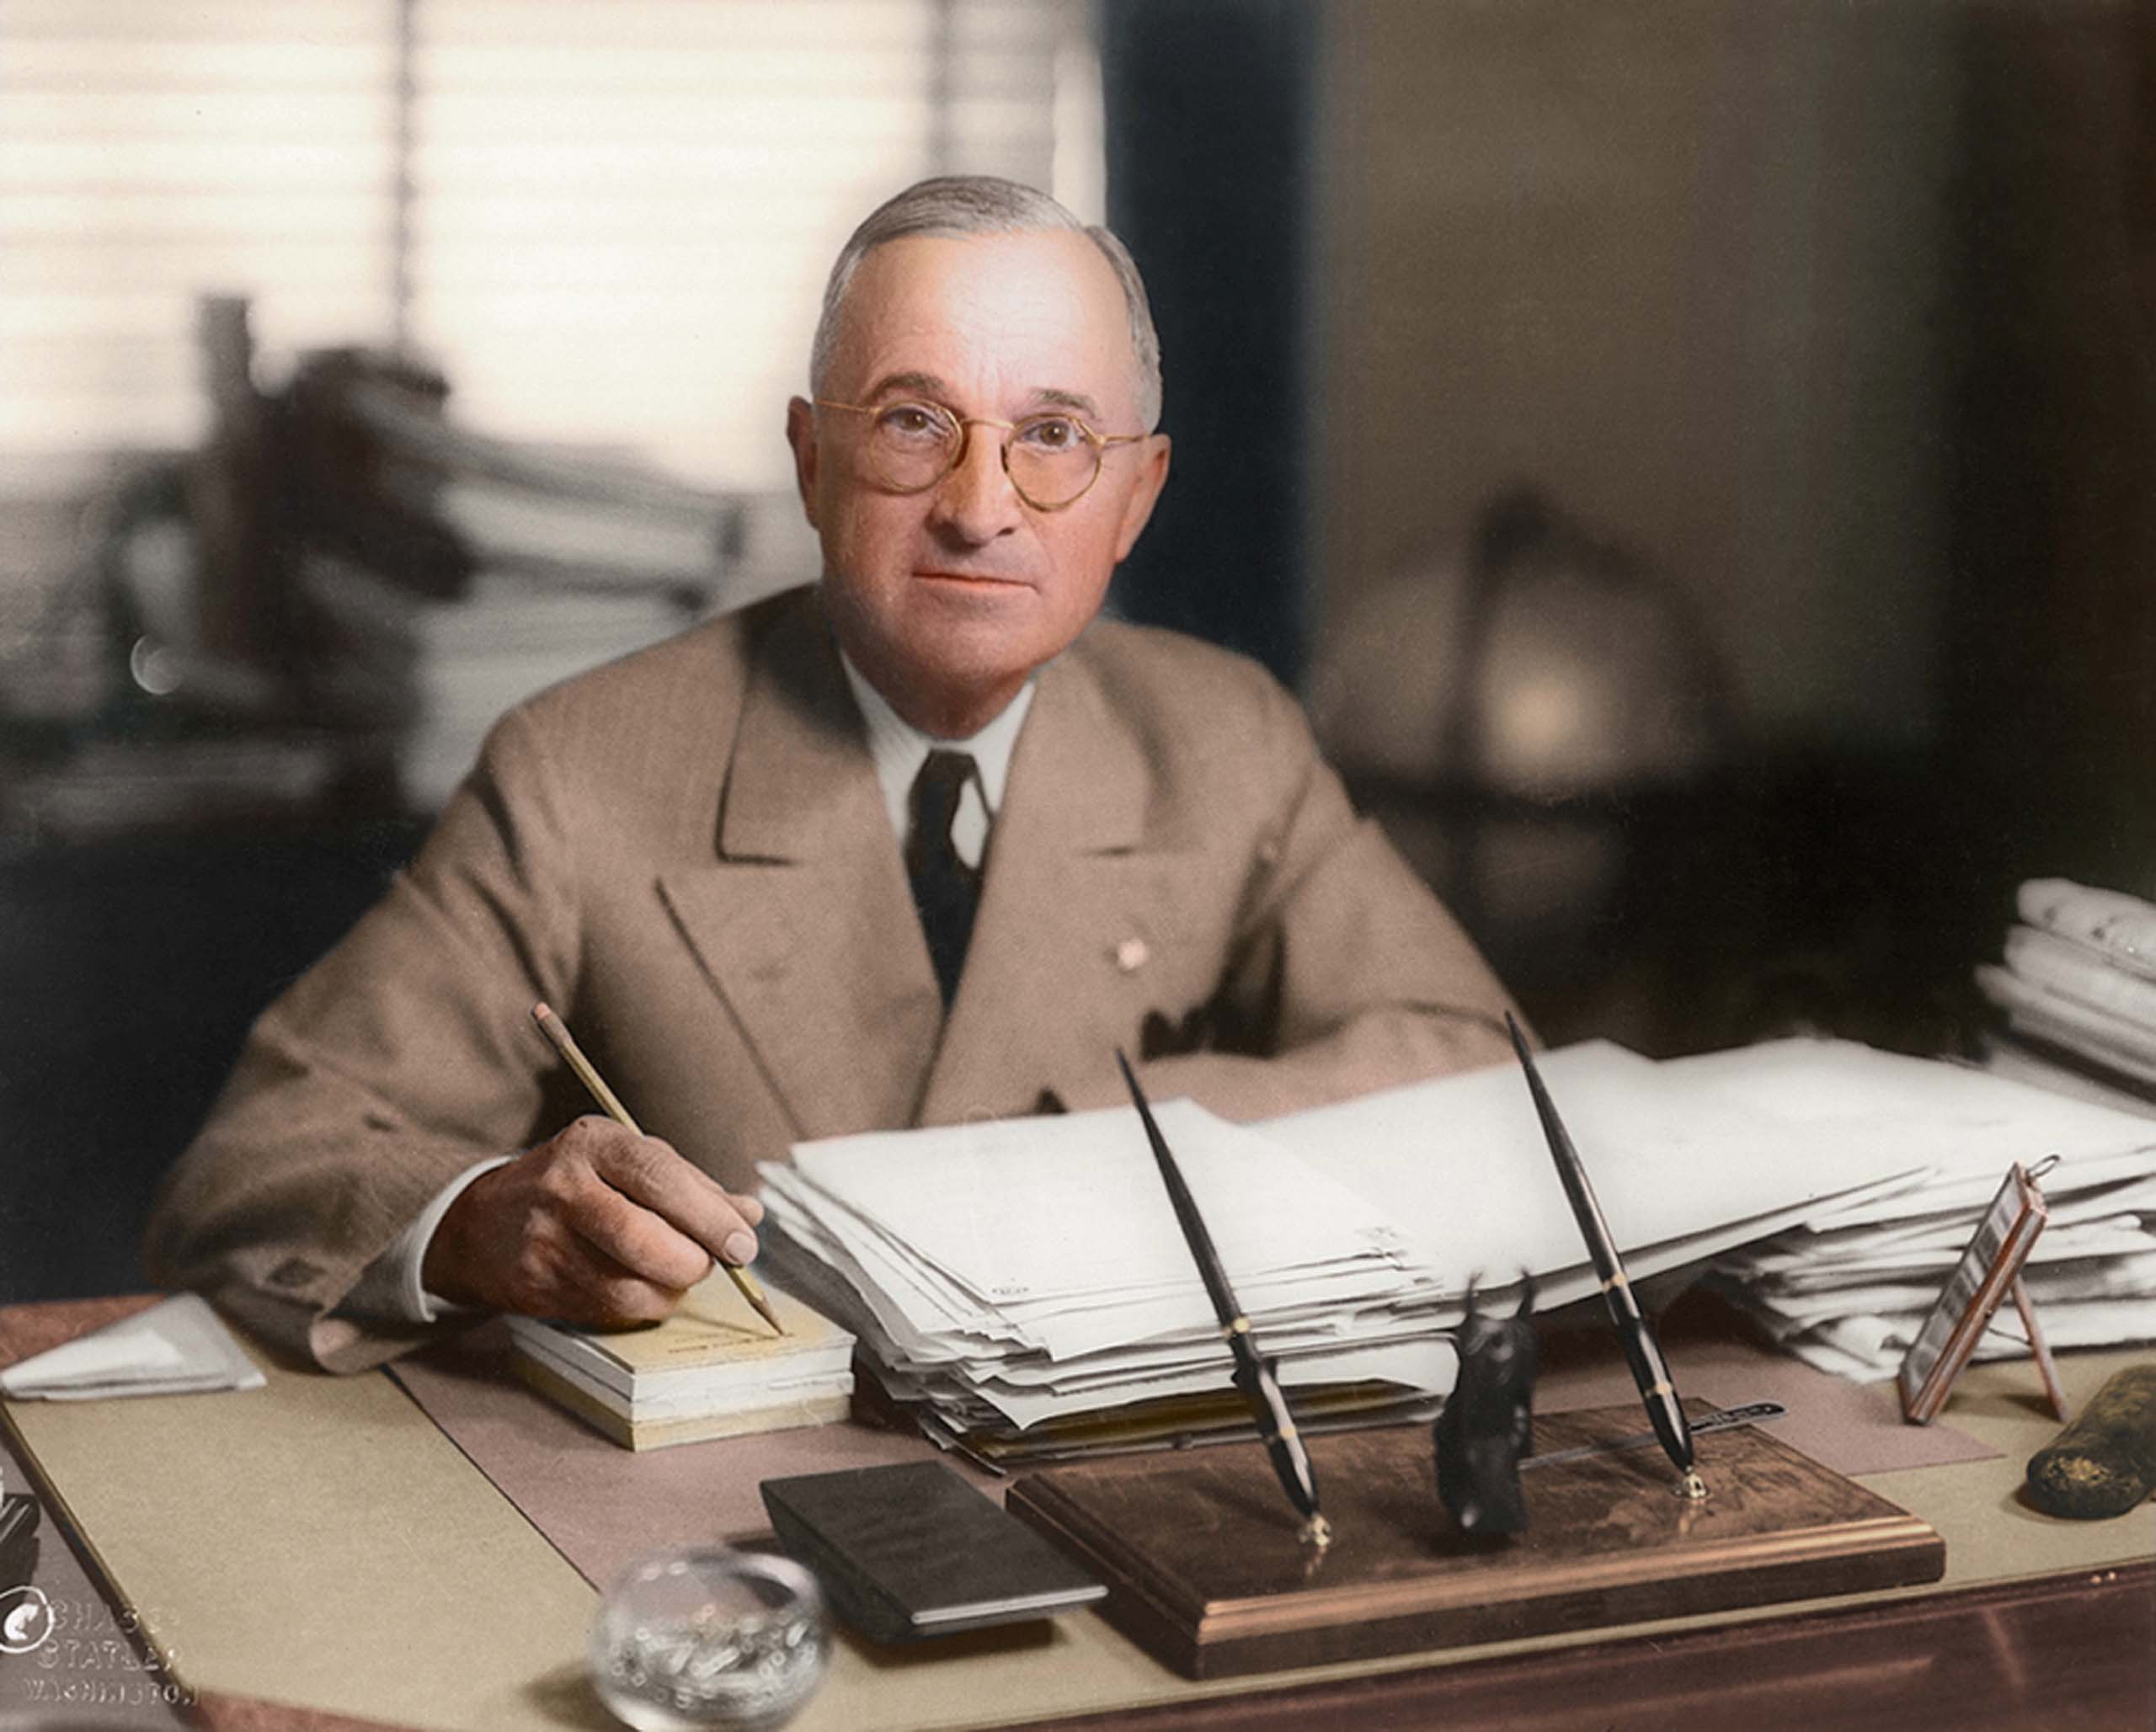 c. April 19, 1945. Harry Truman, half-length portrait, seated at desk, facing front, holding pencil.                                    <i>Ranked #9 in SRI survey of U.S. Presidents.</i>